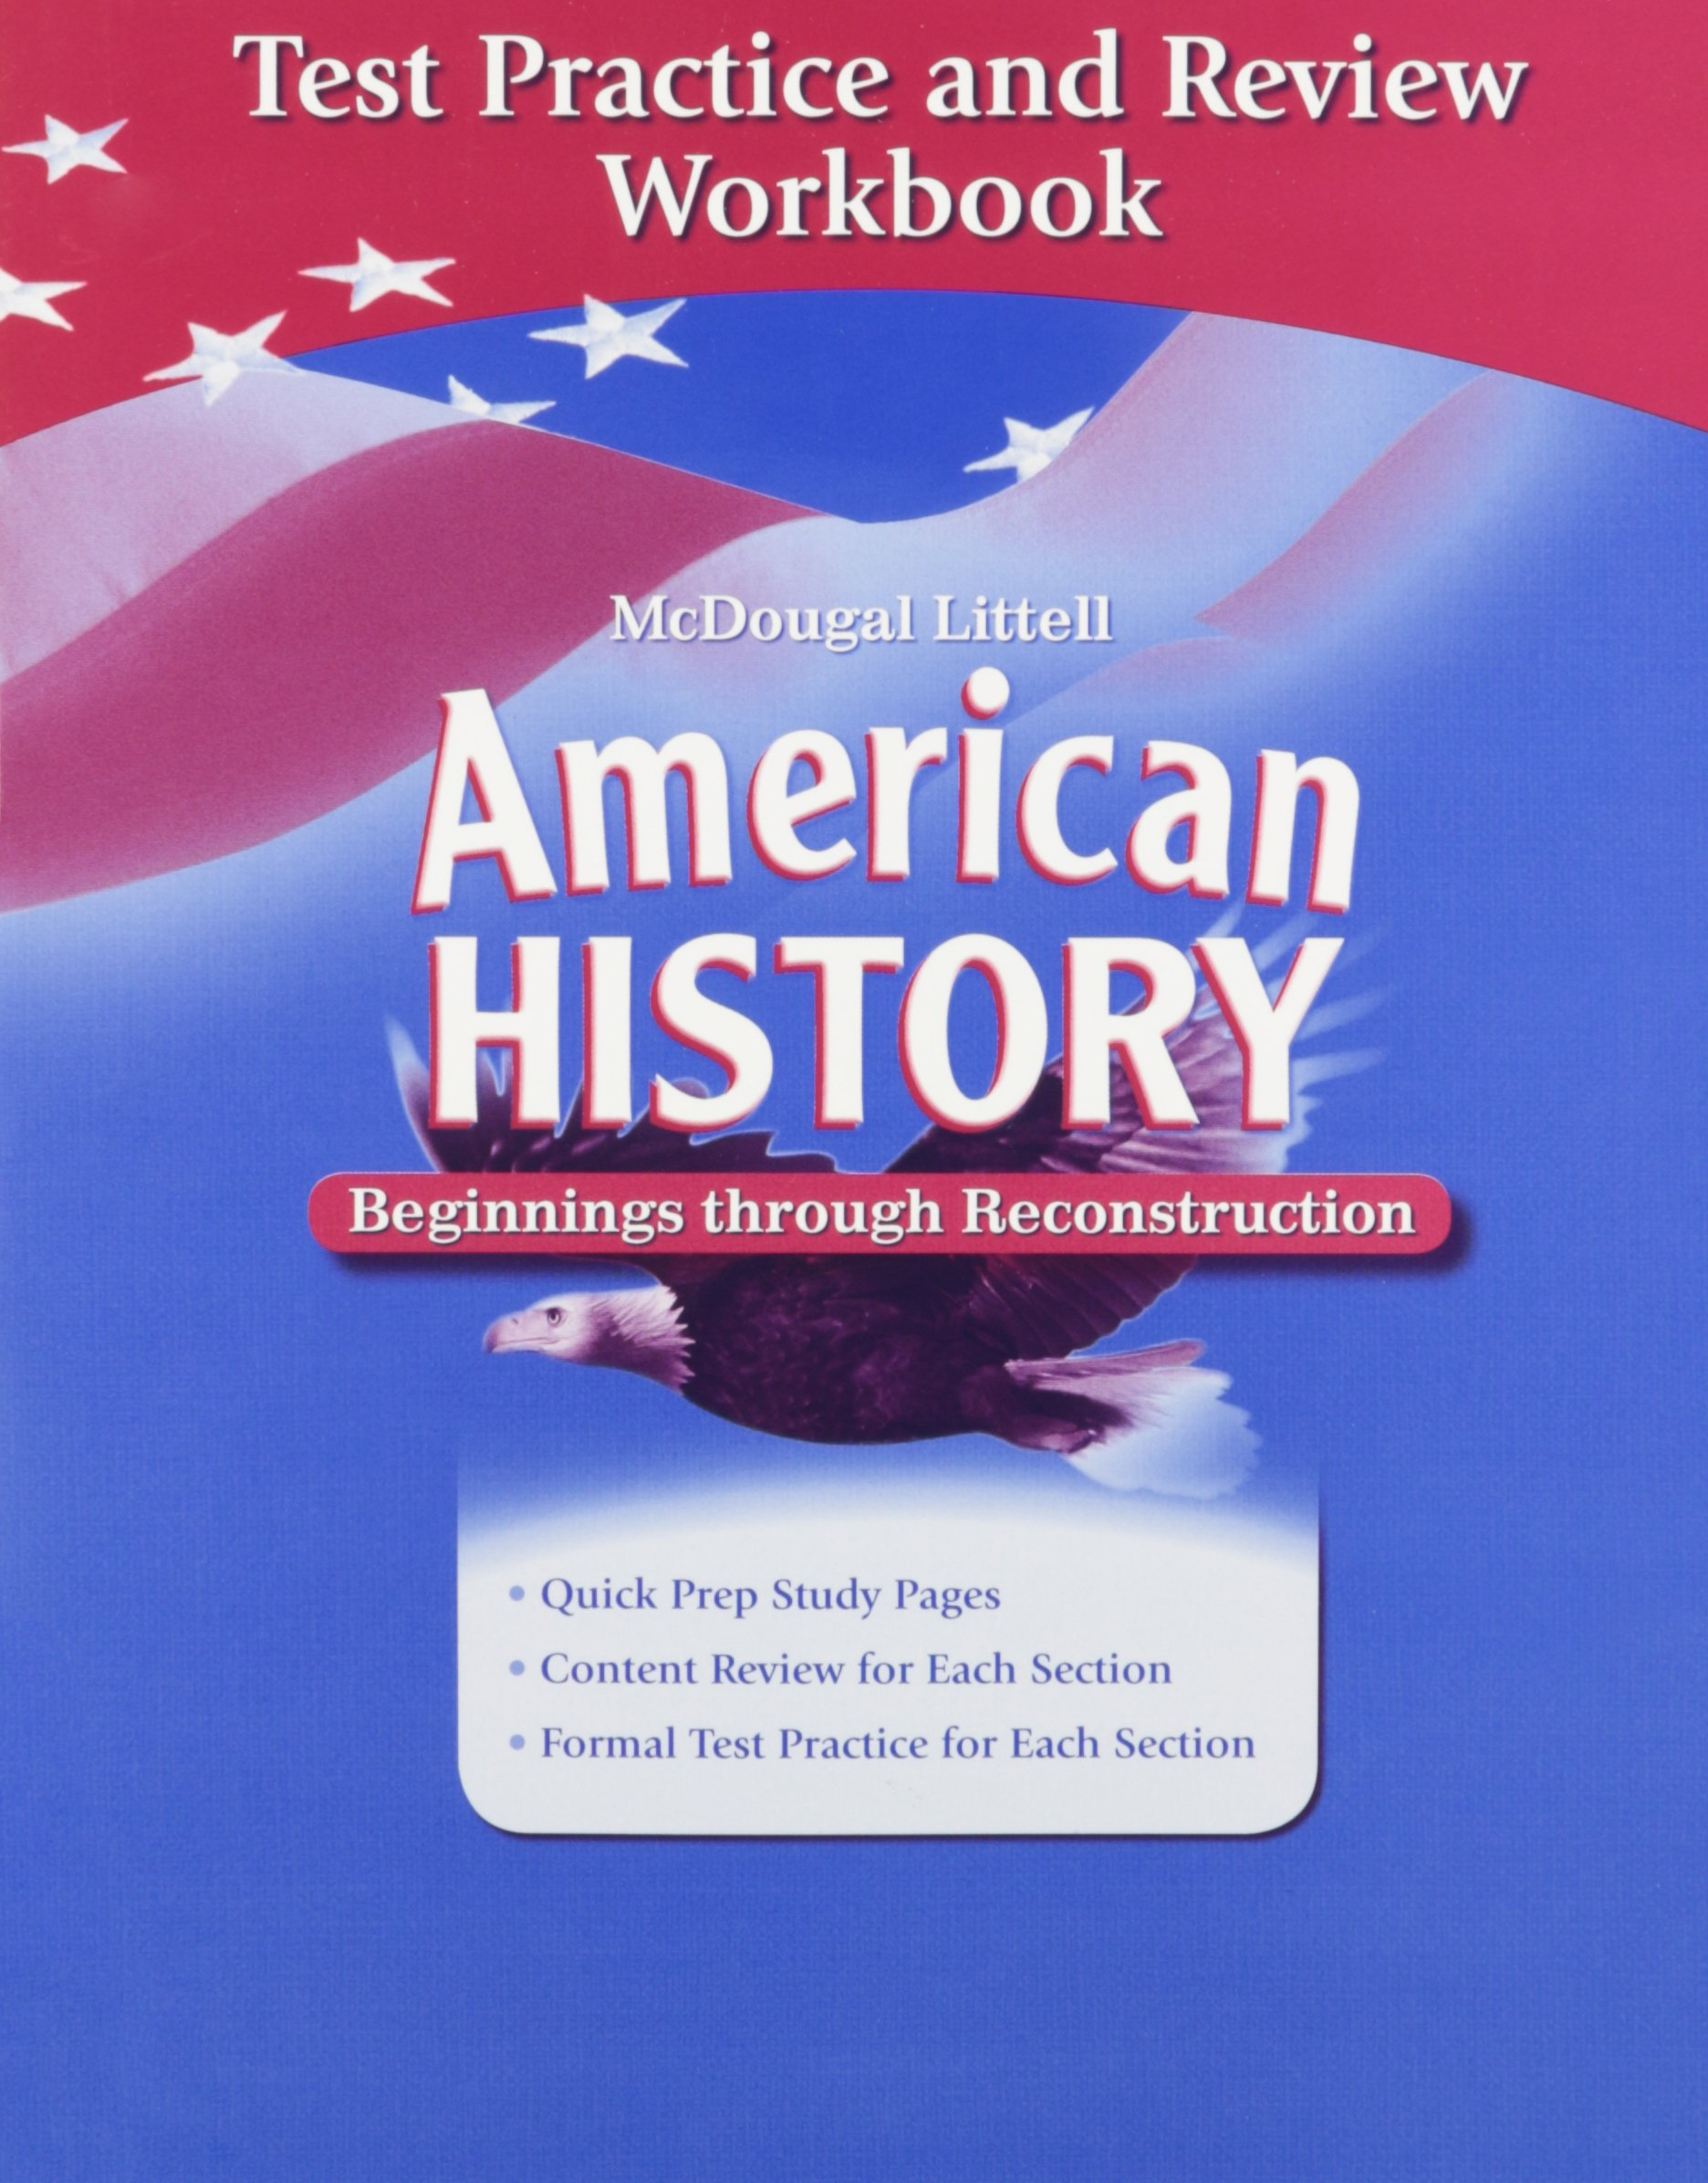 Amazon com: American History: Beginnings through